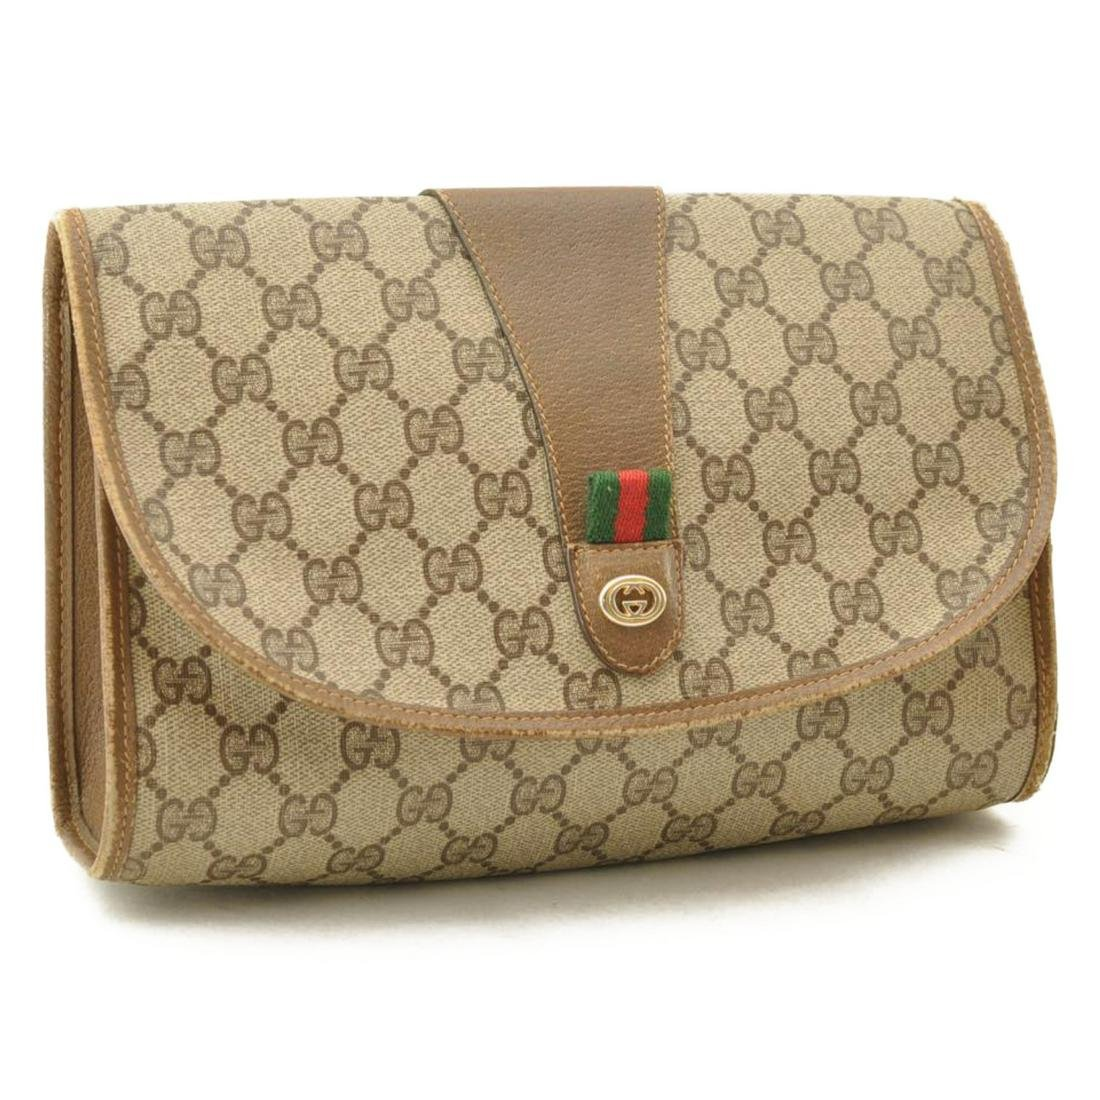 Authentic GUCCI GG Canvas Clutch Bag